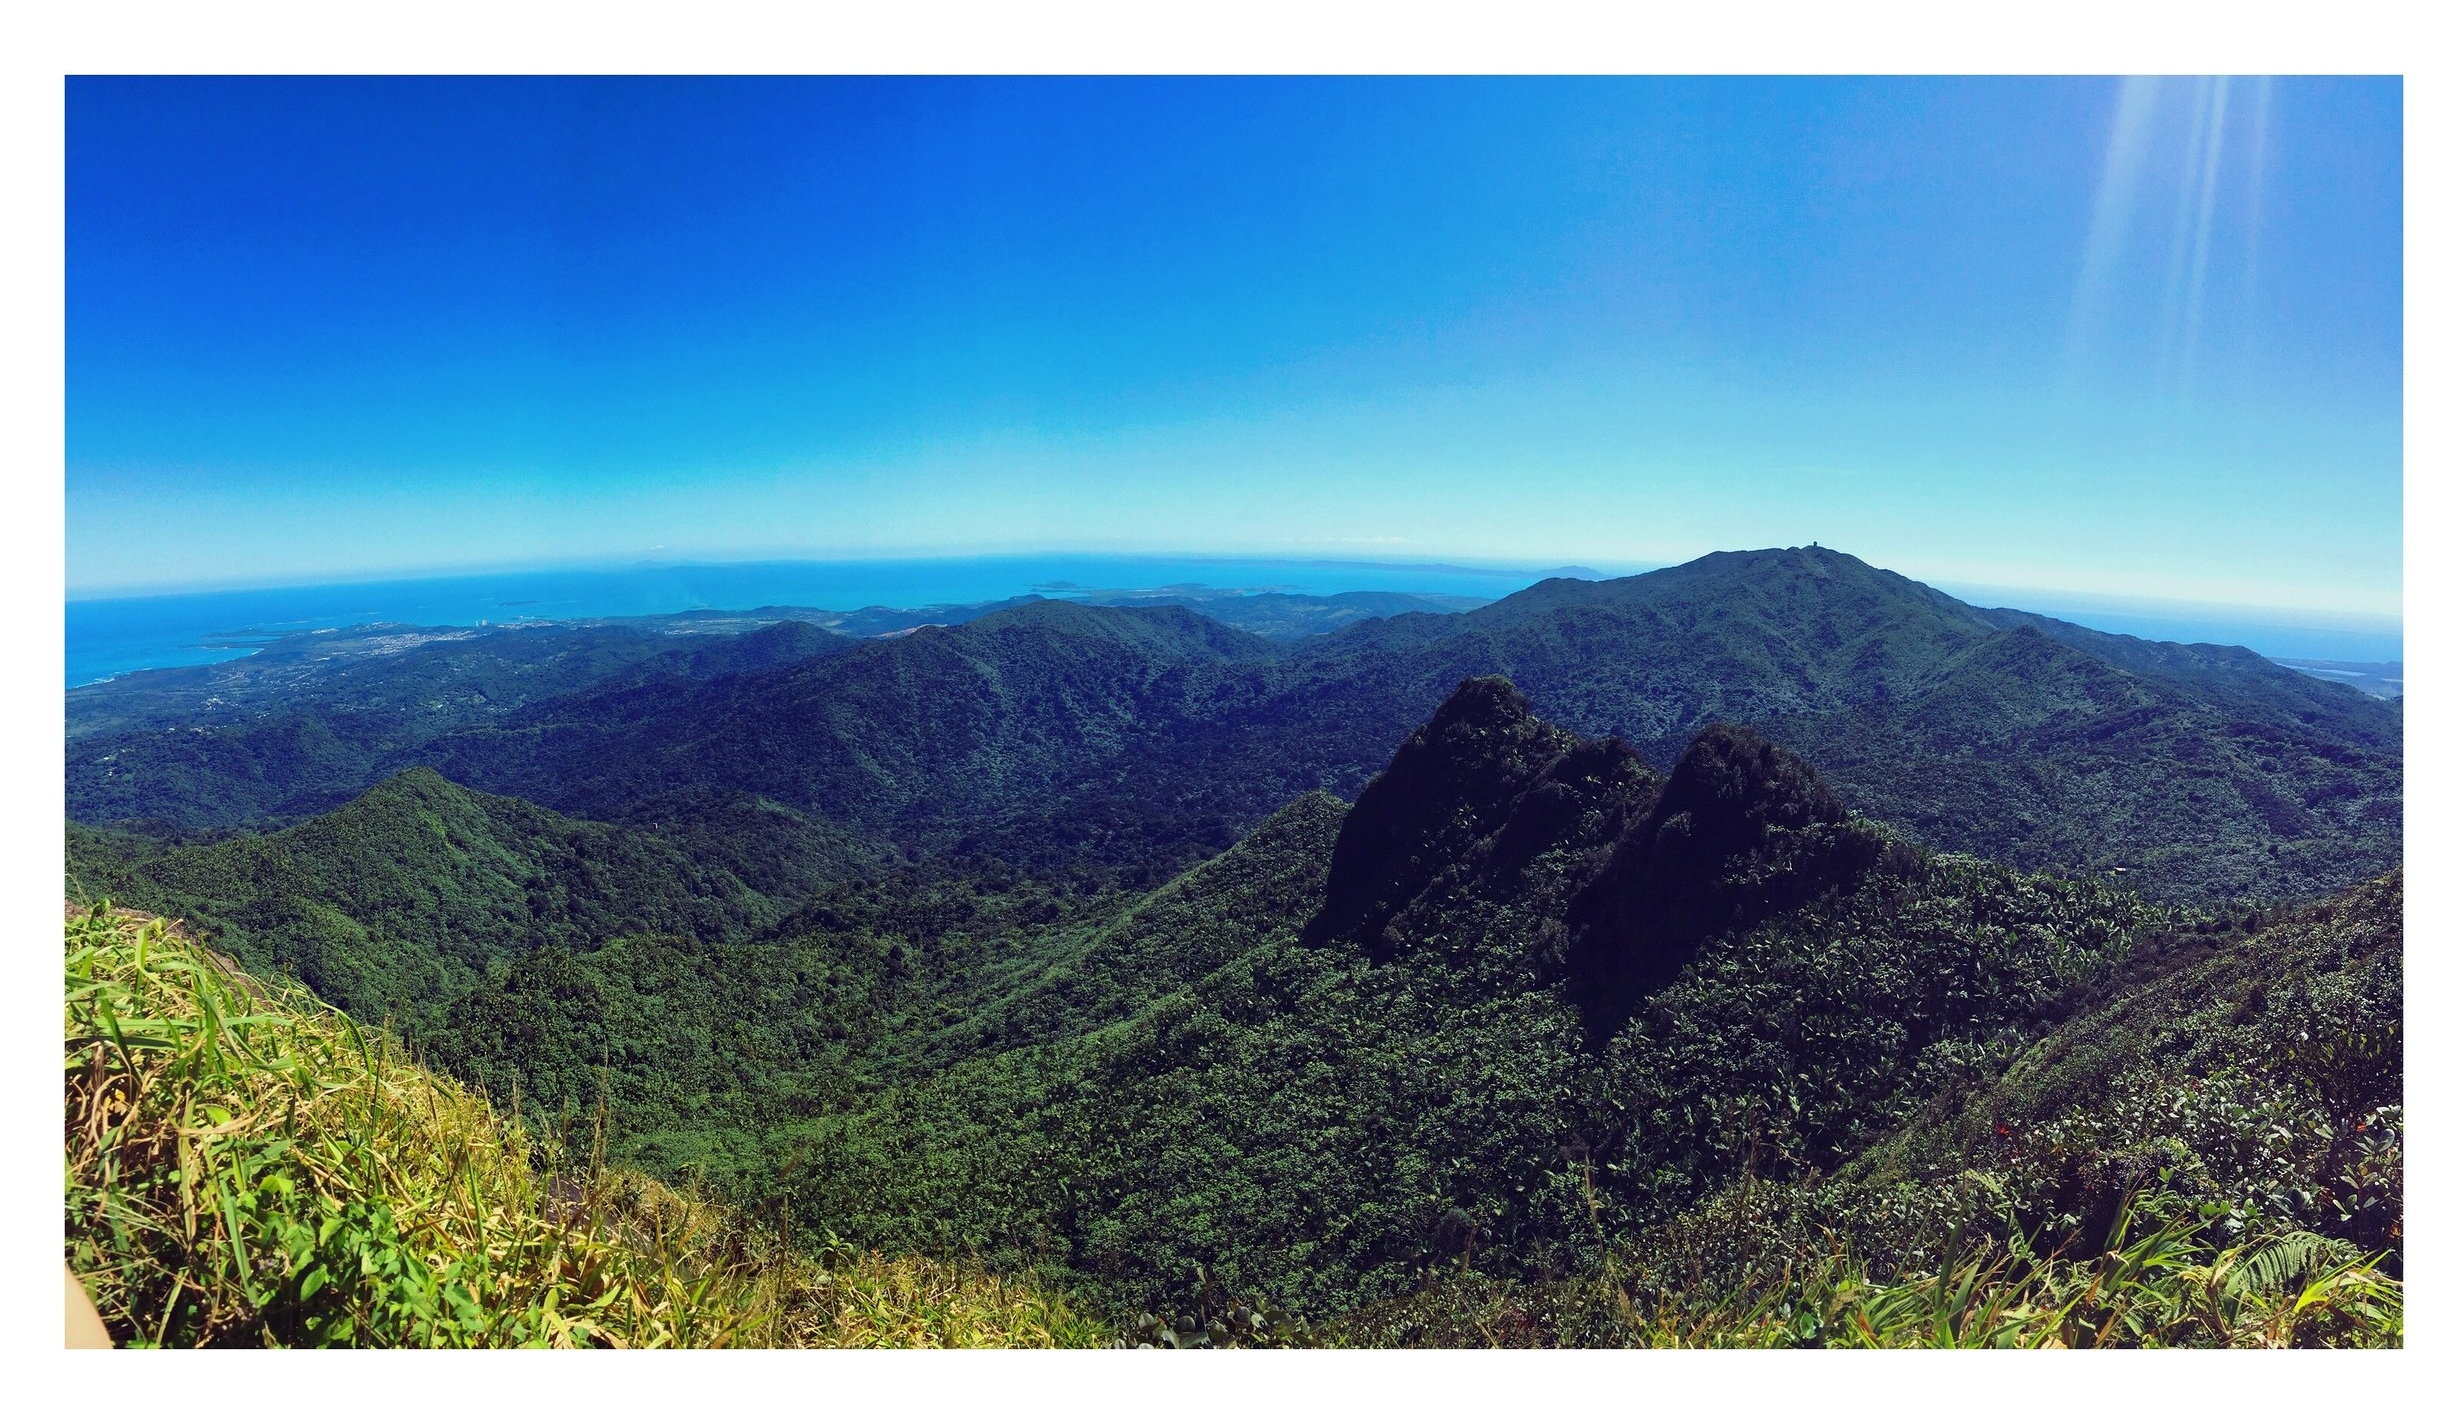 I signed up for an excursion to hike El Junque Rainforest through Dreamcatcher and met a lovely American couple on the tour. It was only the three of us and our tour guide Charlito, so it was super intimate.Charlito was very kind and took us on way more trails than he was obligated to.I took this shot from the summit of El Junque.Charlito said that he had not seen the sky as clear as it was on this day in months. It was so clear, that you could see the island of St. Thomas. It was breathtaking.